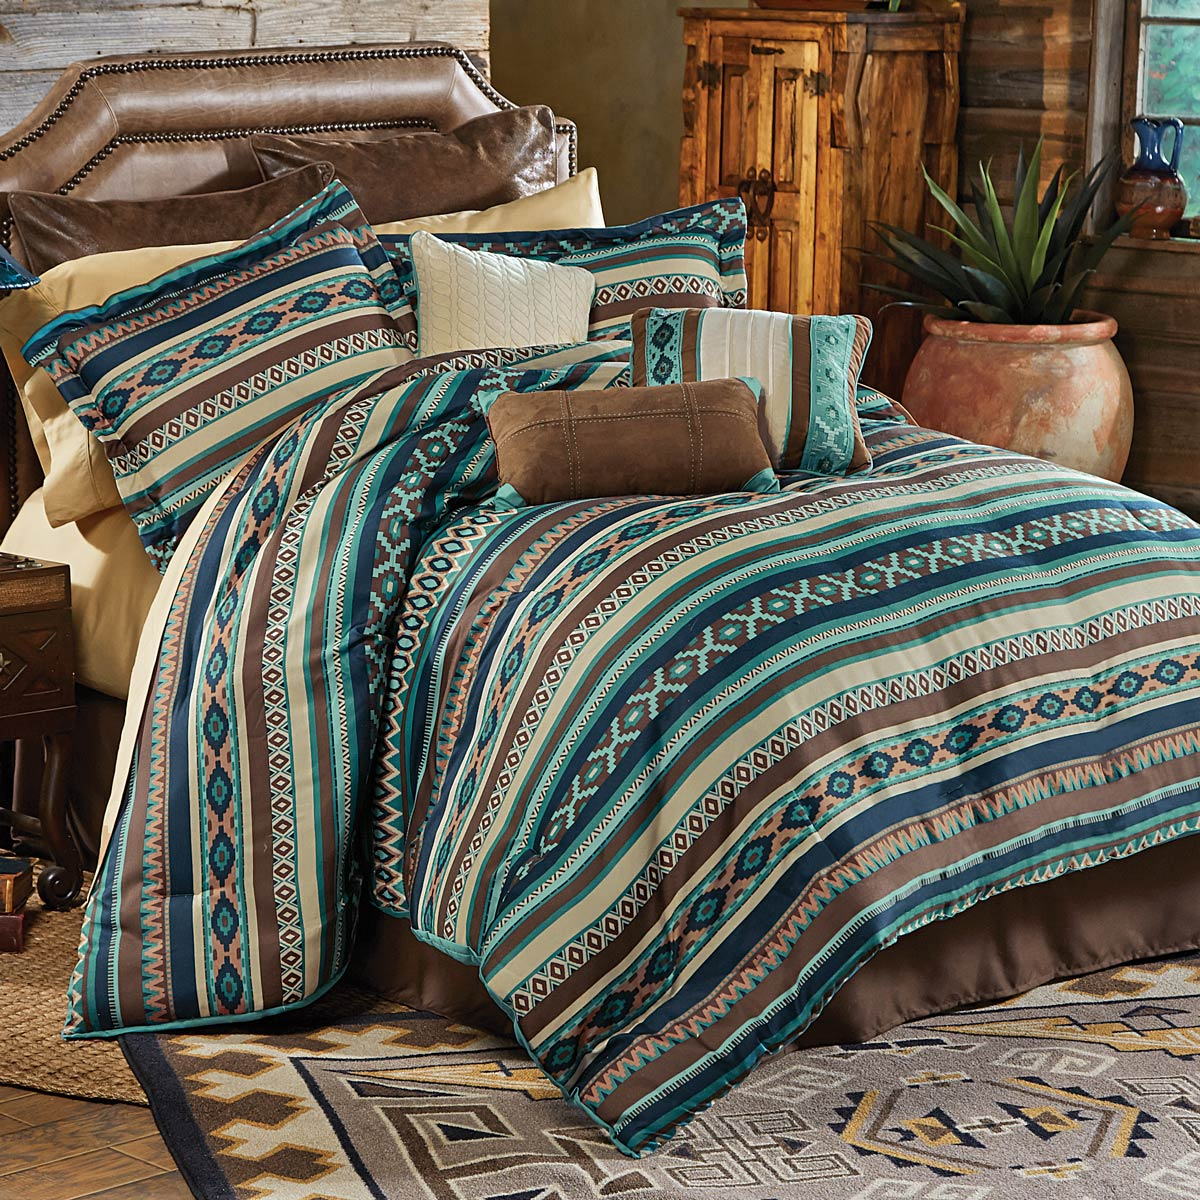 Western Bedding Sets: King Size Turquoise River Bed Set|Lone Star